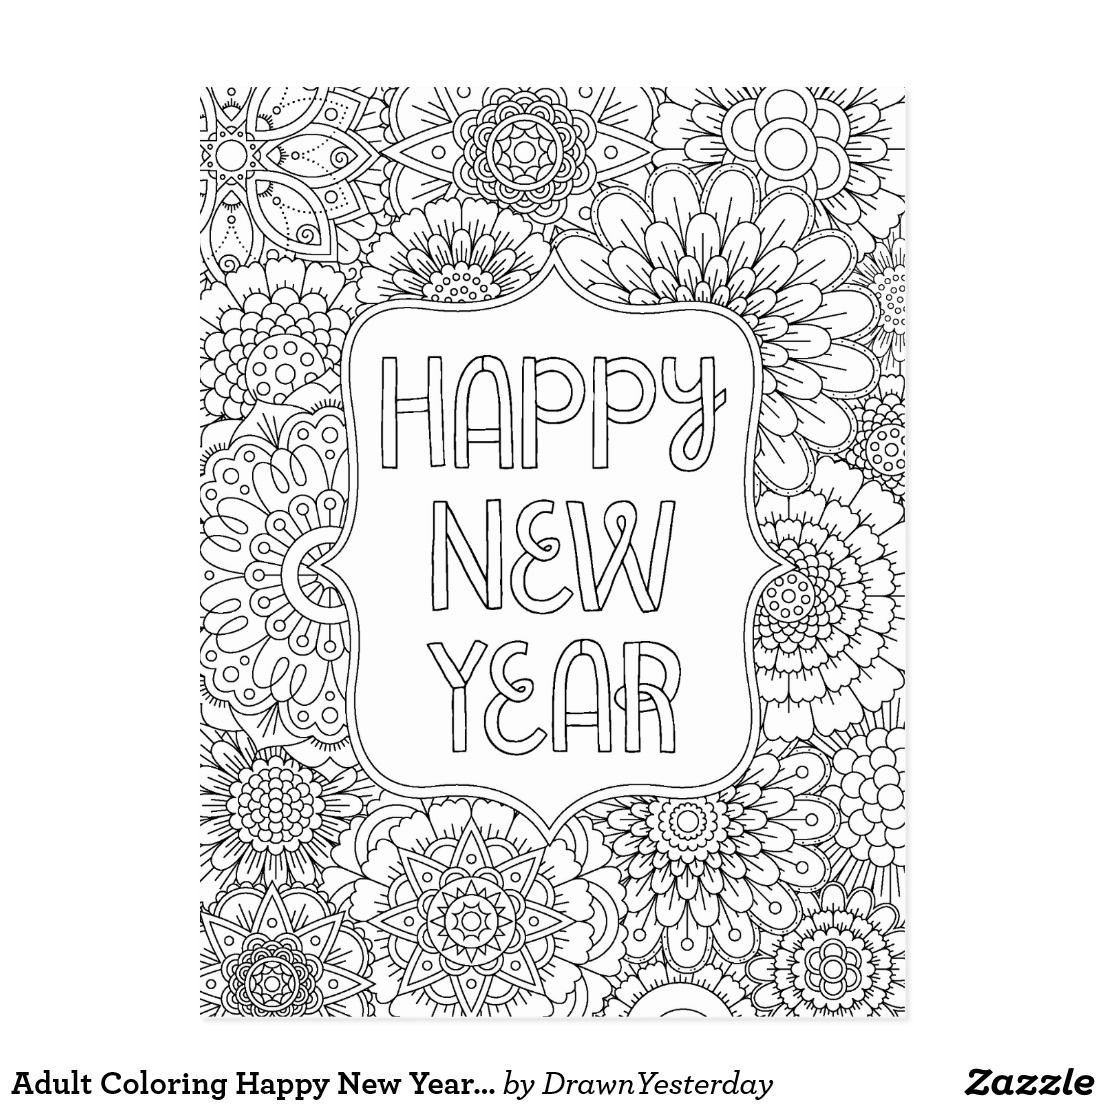 Adult Coloring Happy New Year Postcard